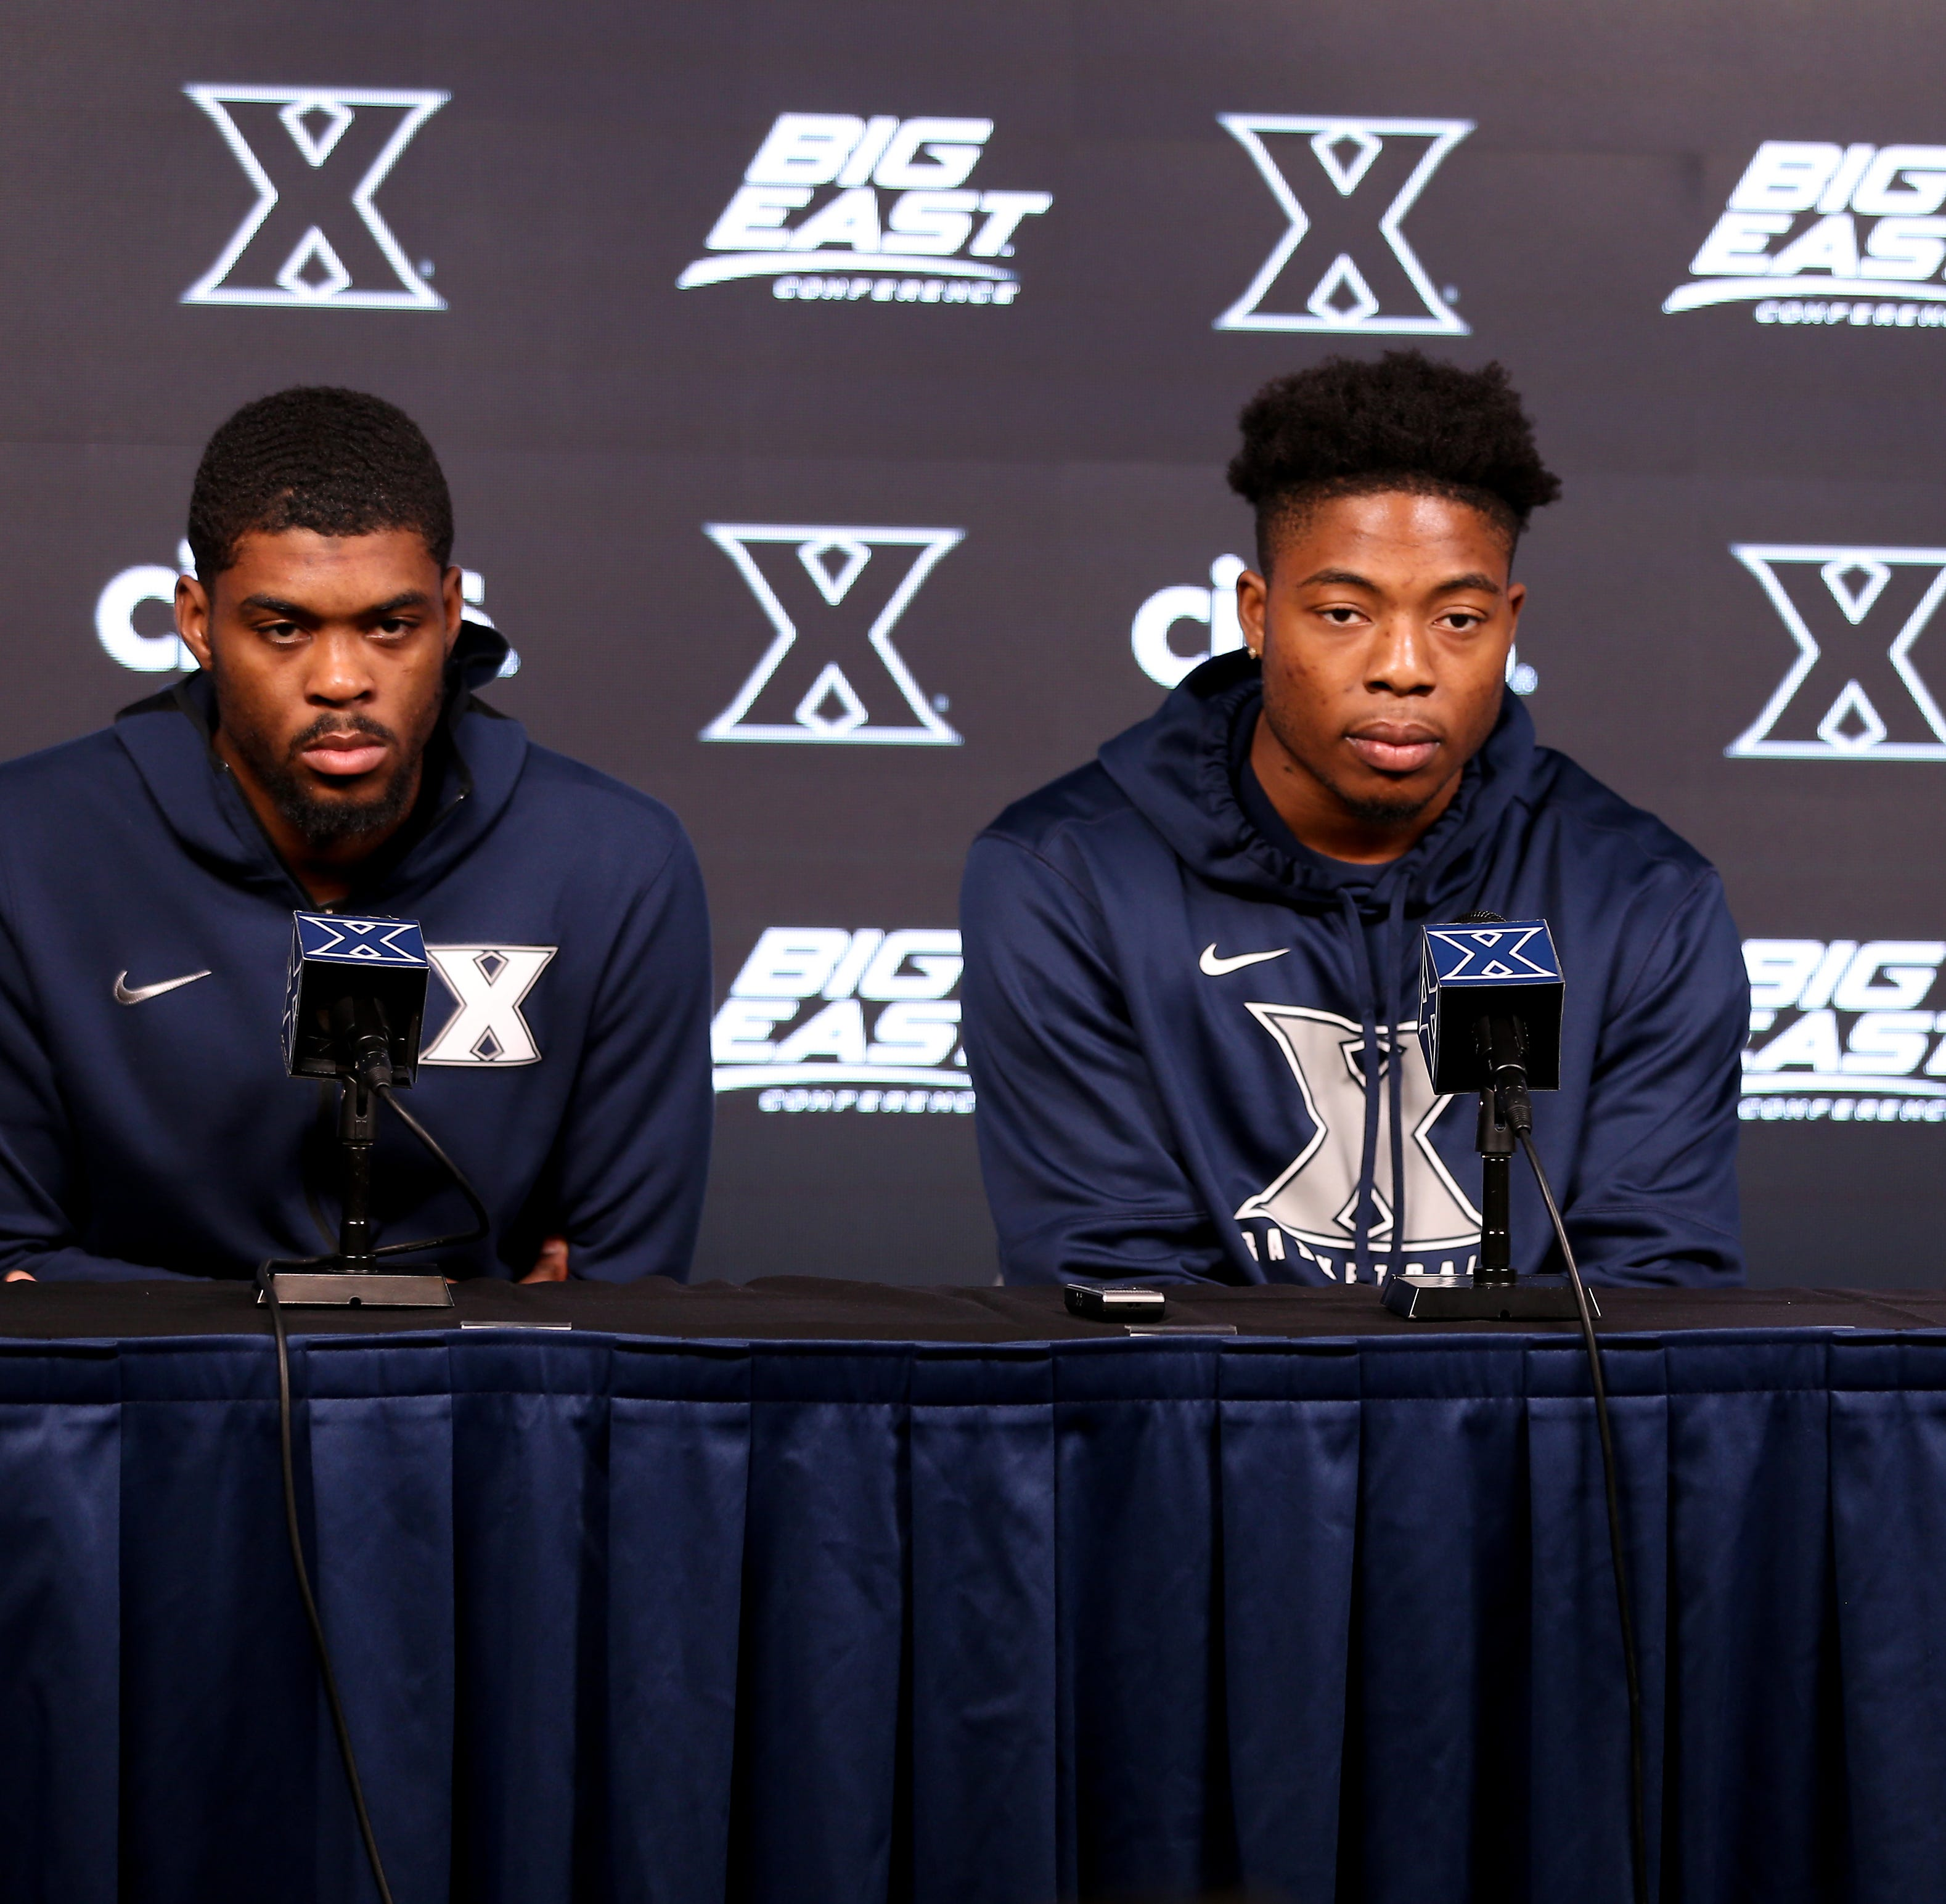 Xavier's Marshall, Goodin, Scruggs join Jones by declaring for the 2019 NBA Draft